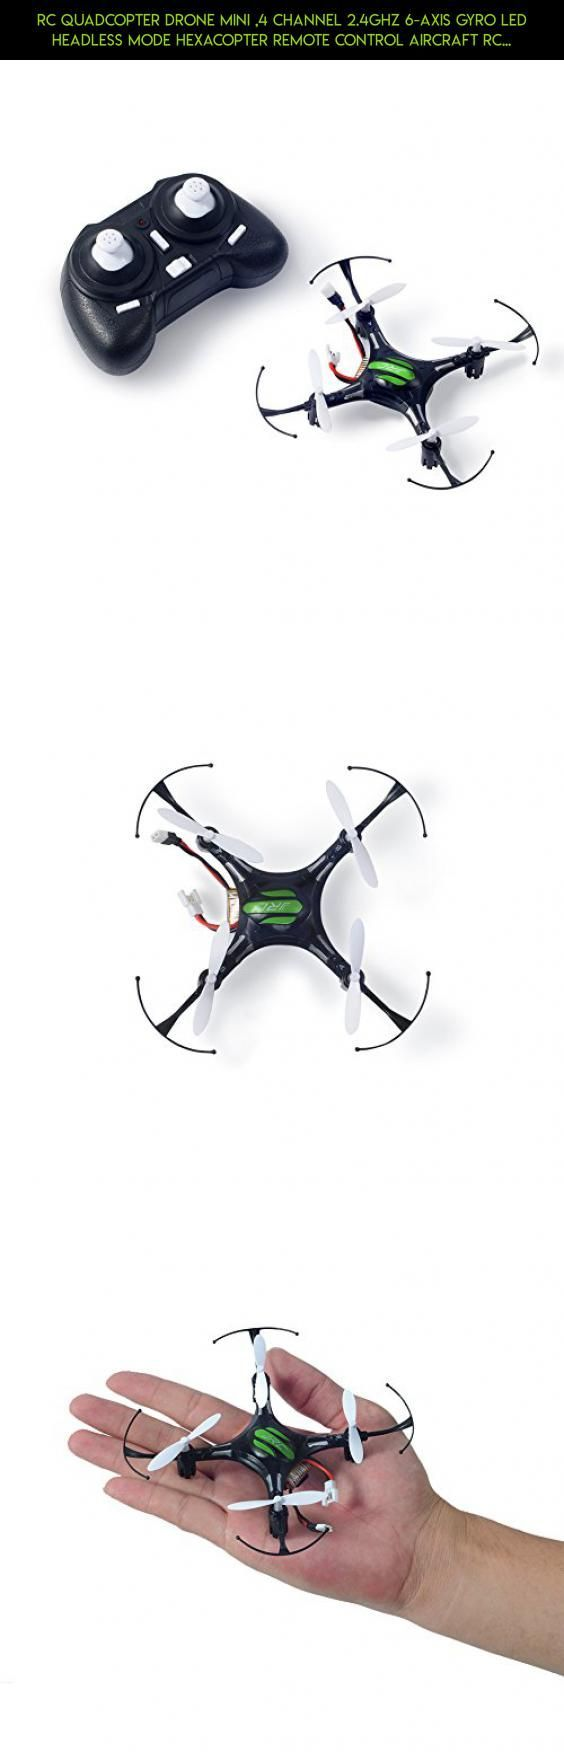 RC Quadcopter Drone Mini ,4 Channel 2.4GHz 6-Axis Gyro LED Headless Mode Hexacopter Remote Control Aircraft RC Helicopters Black #nerf #technology #fpv #kit #air #tech #parts #plans #drone #camera #products #hogs #shopping #racing #gadgets